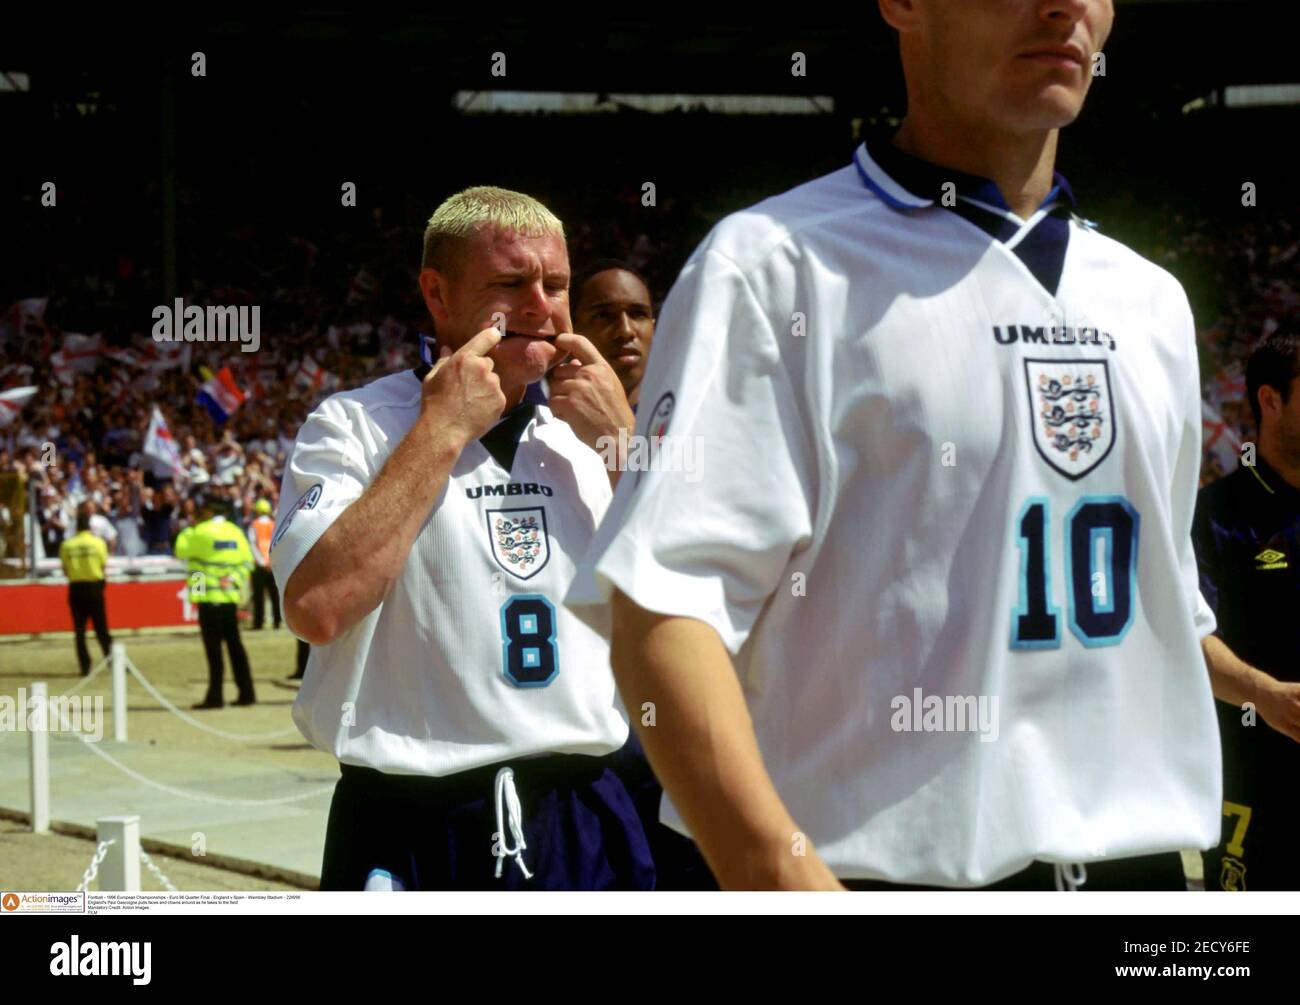 Football - 1996 European Championships - Euro 96 Quarter Final - England v Spain - Wembley Stadium - 22/6/96  England's Paul Gascoigne pulls faces and clowns around as he takes to the field  Mandatory Credit: Action Images  FILM Stock Photo